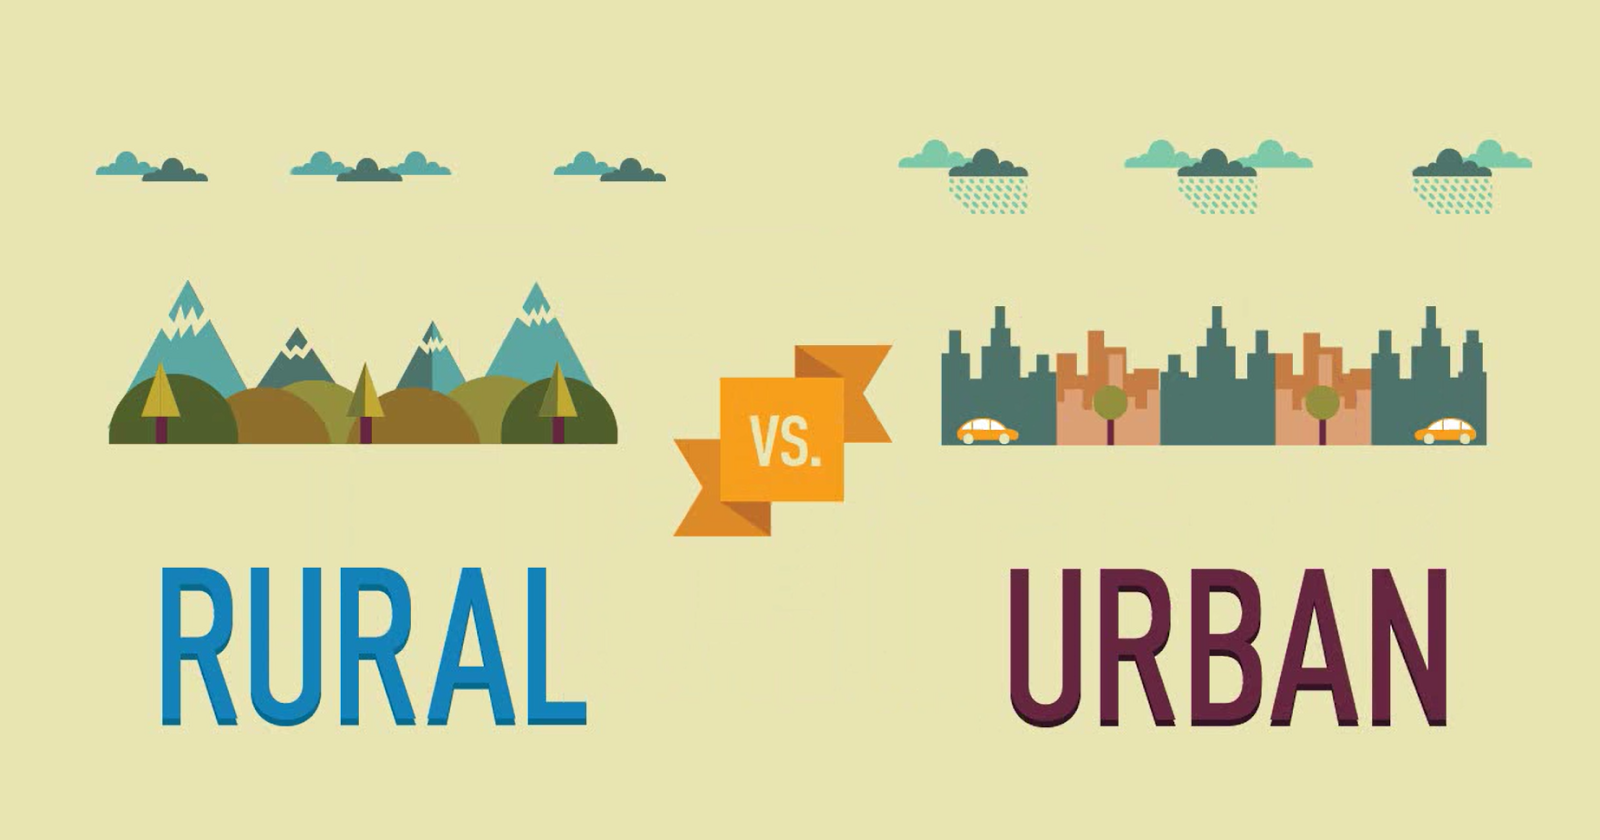 suburban vs urban life Difference difference between rural and suburban urban rban', 'suburban', and 'rural' college what are some differences between rural, suburban, urban urban.